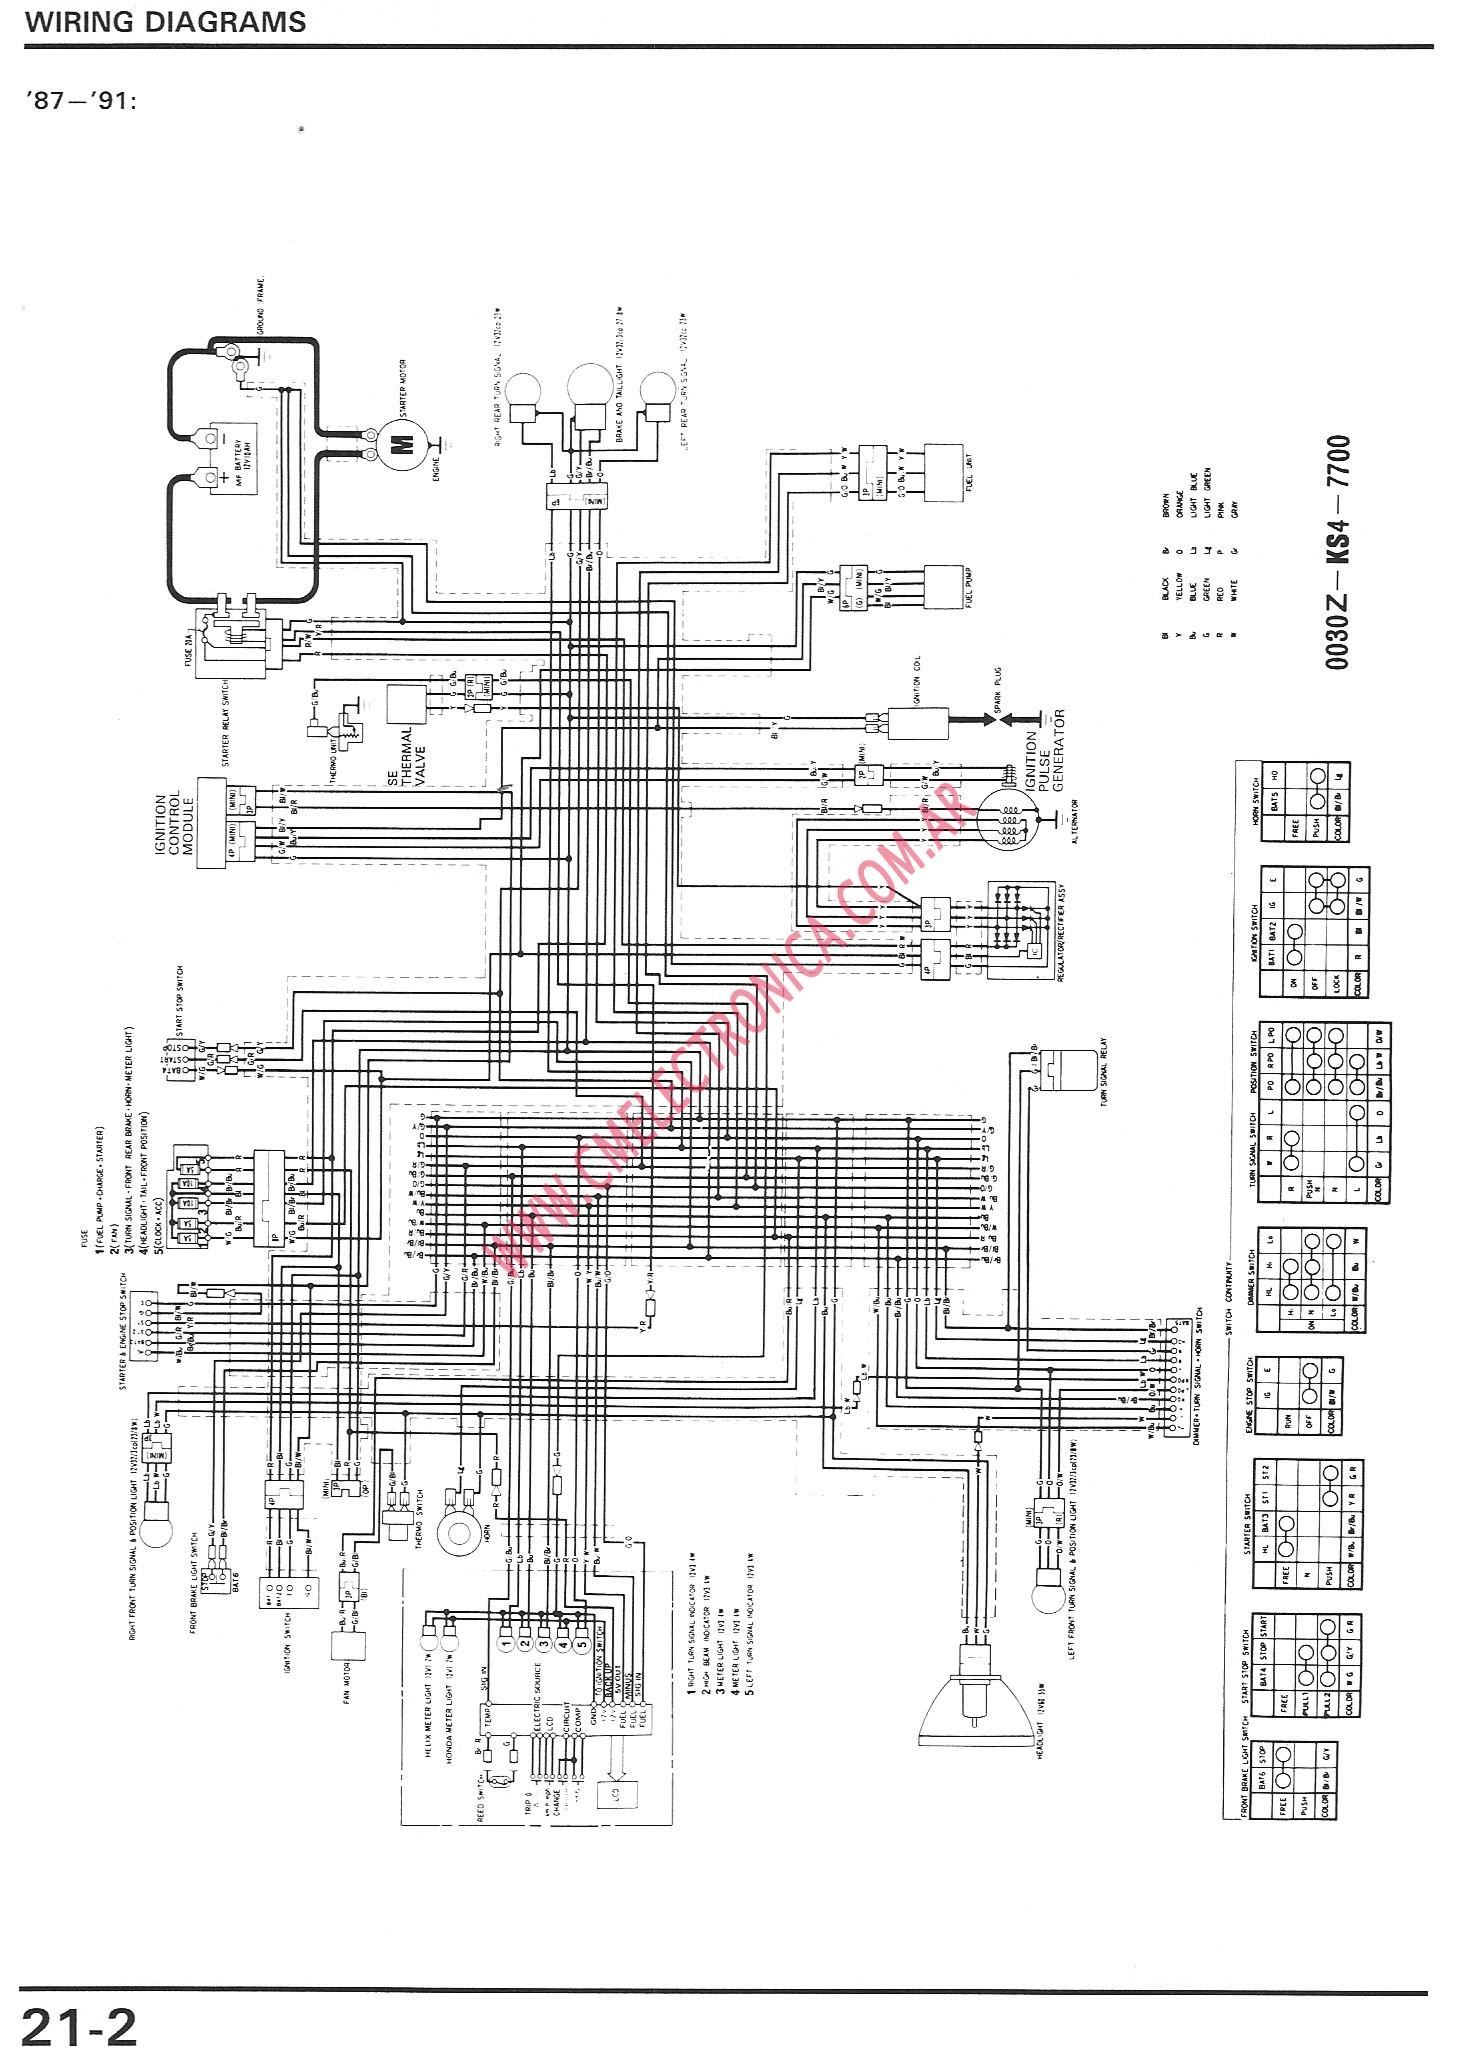 Daihatsu Hijet Engine Diagram Daihatsu Hijet Wiring Diagram Daihatsu Wiring Diagrams Instructions Of Daihatsu Hijet Engine Diagram